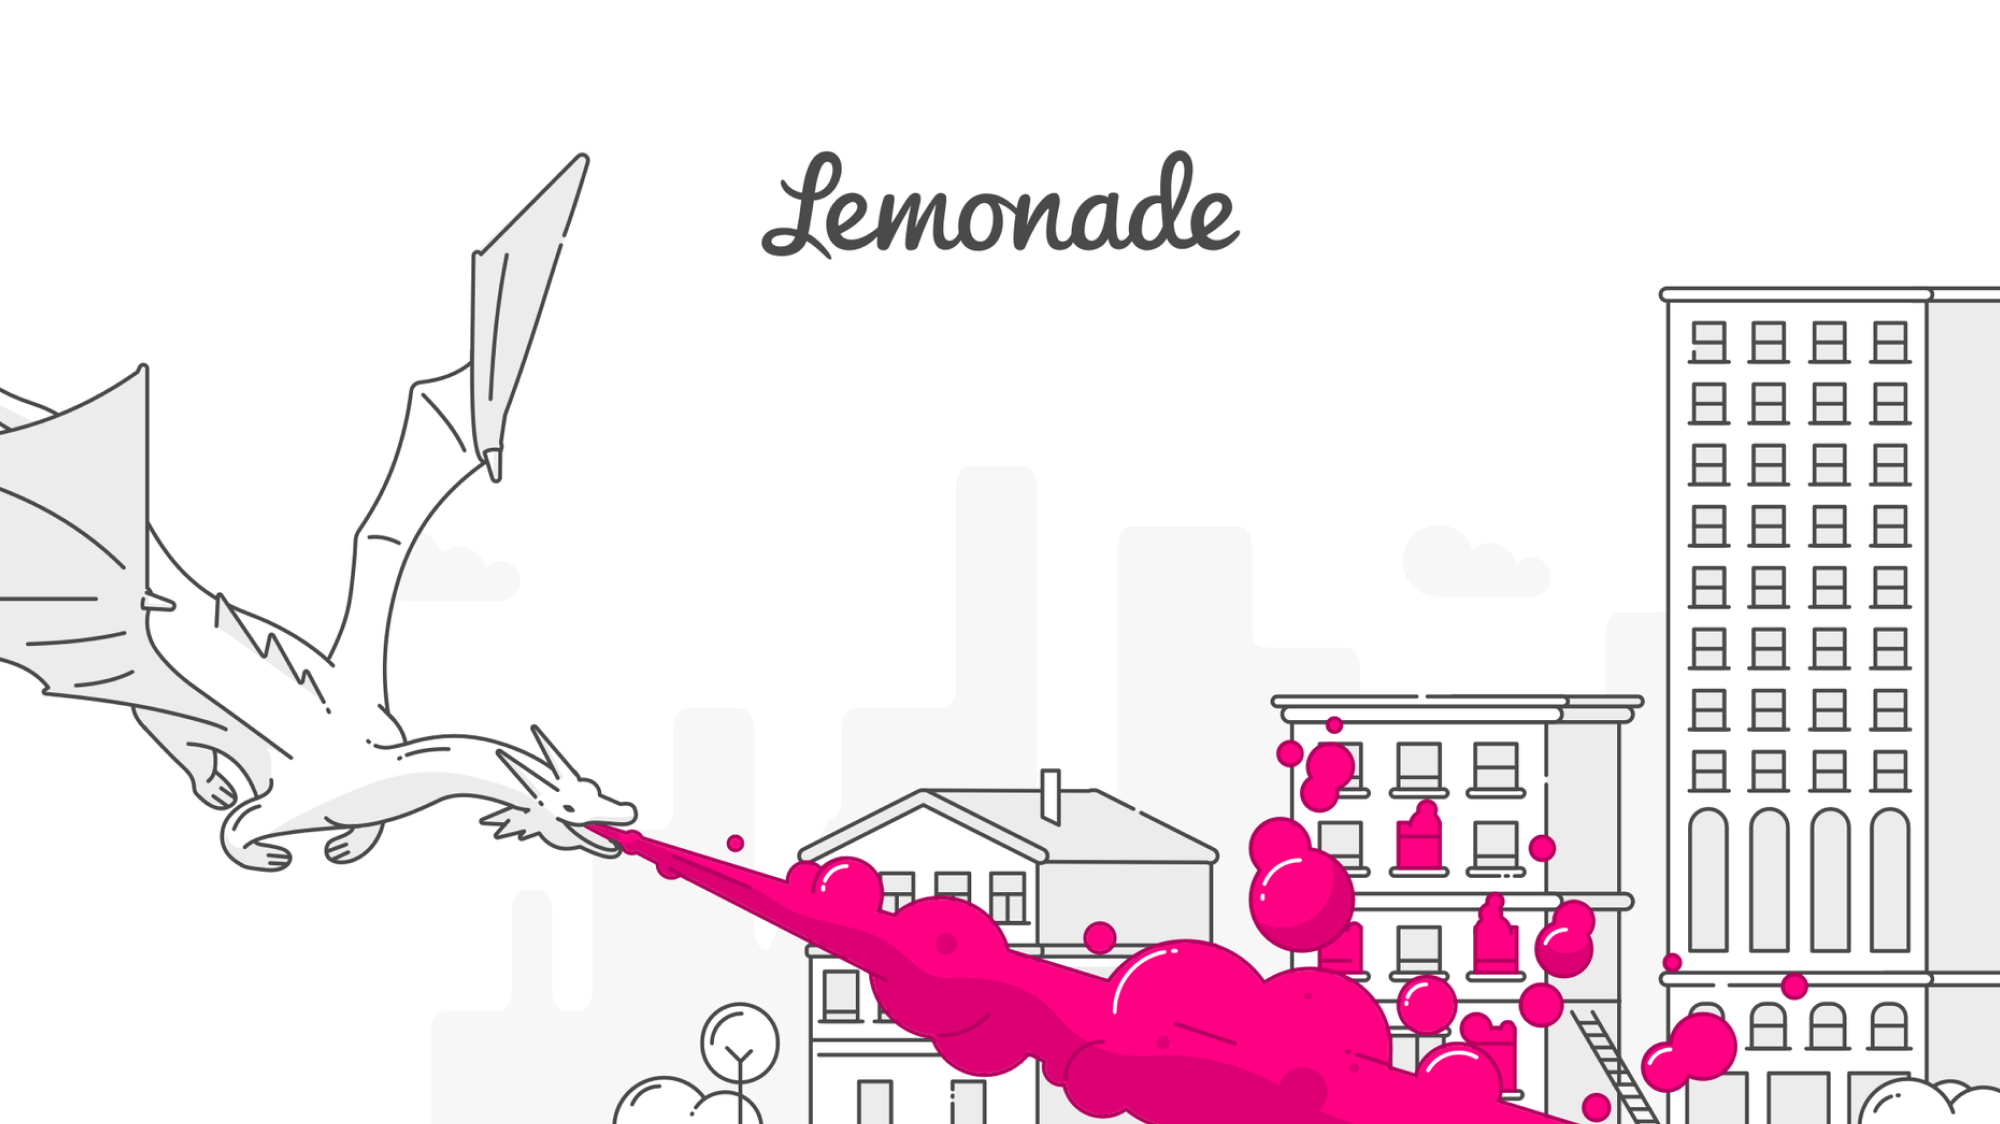 Lemonade: Disrupting One of the Most Entrenched Industries in the World